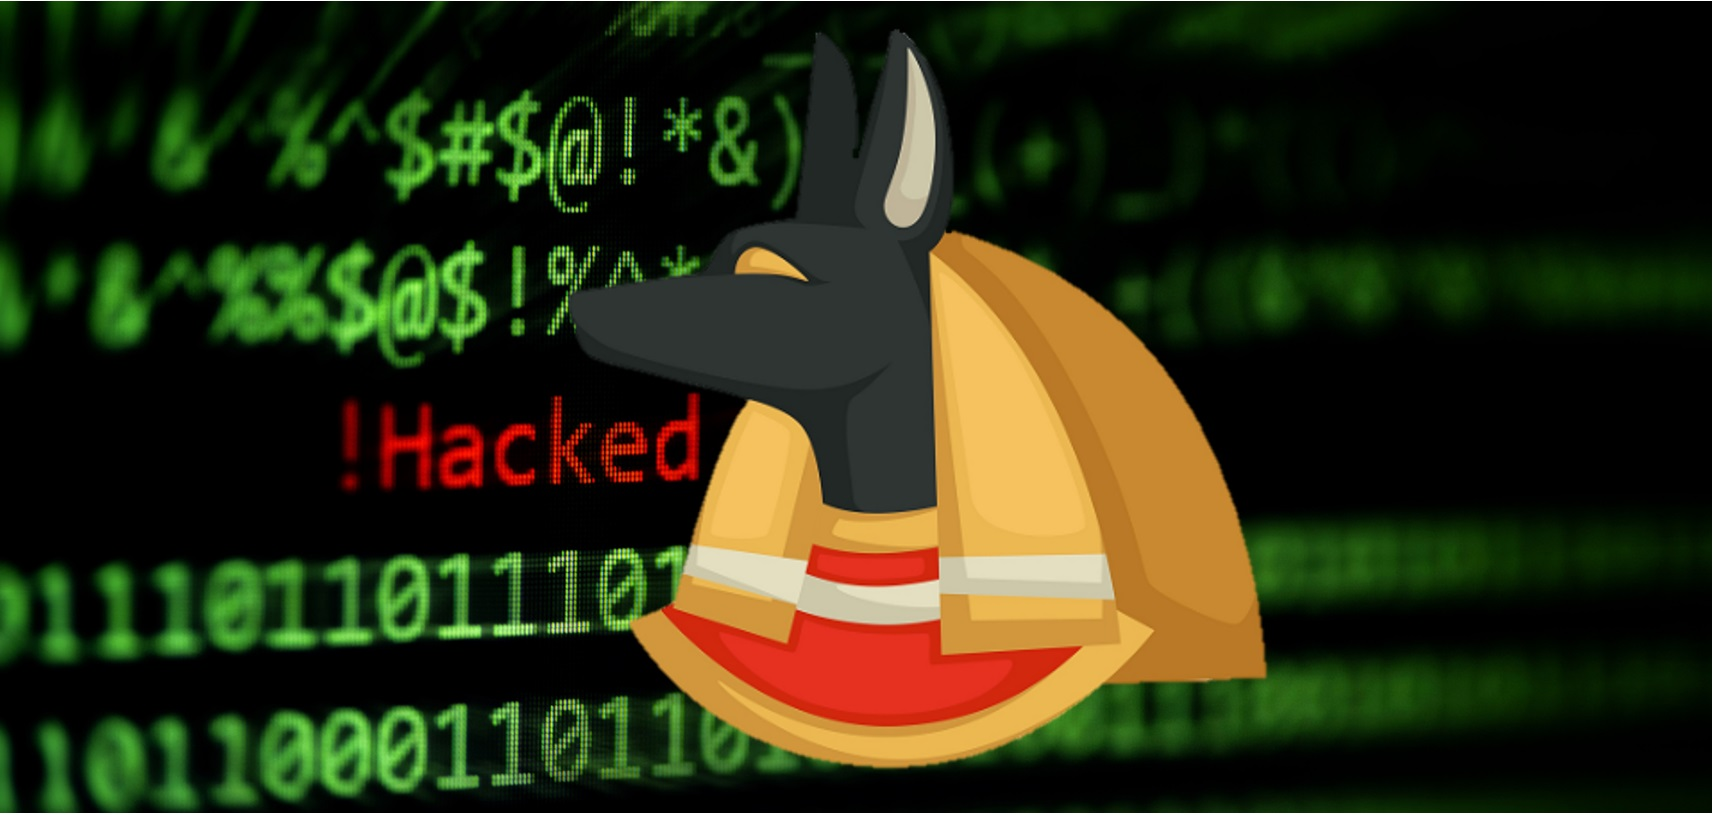 Anubis Malware Sneaks Into Google Play Store, Attacks Smartphone Apps